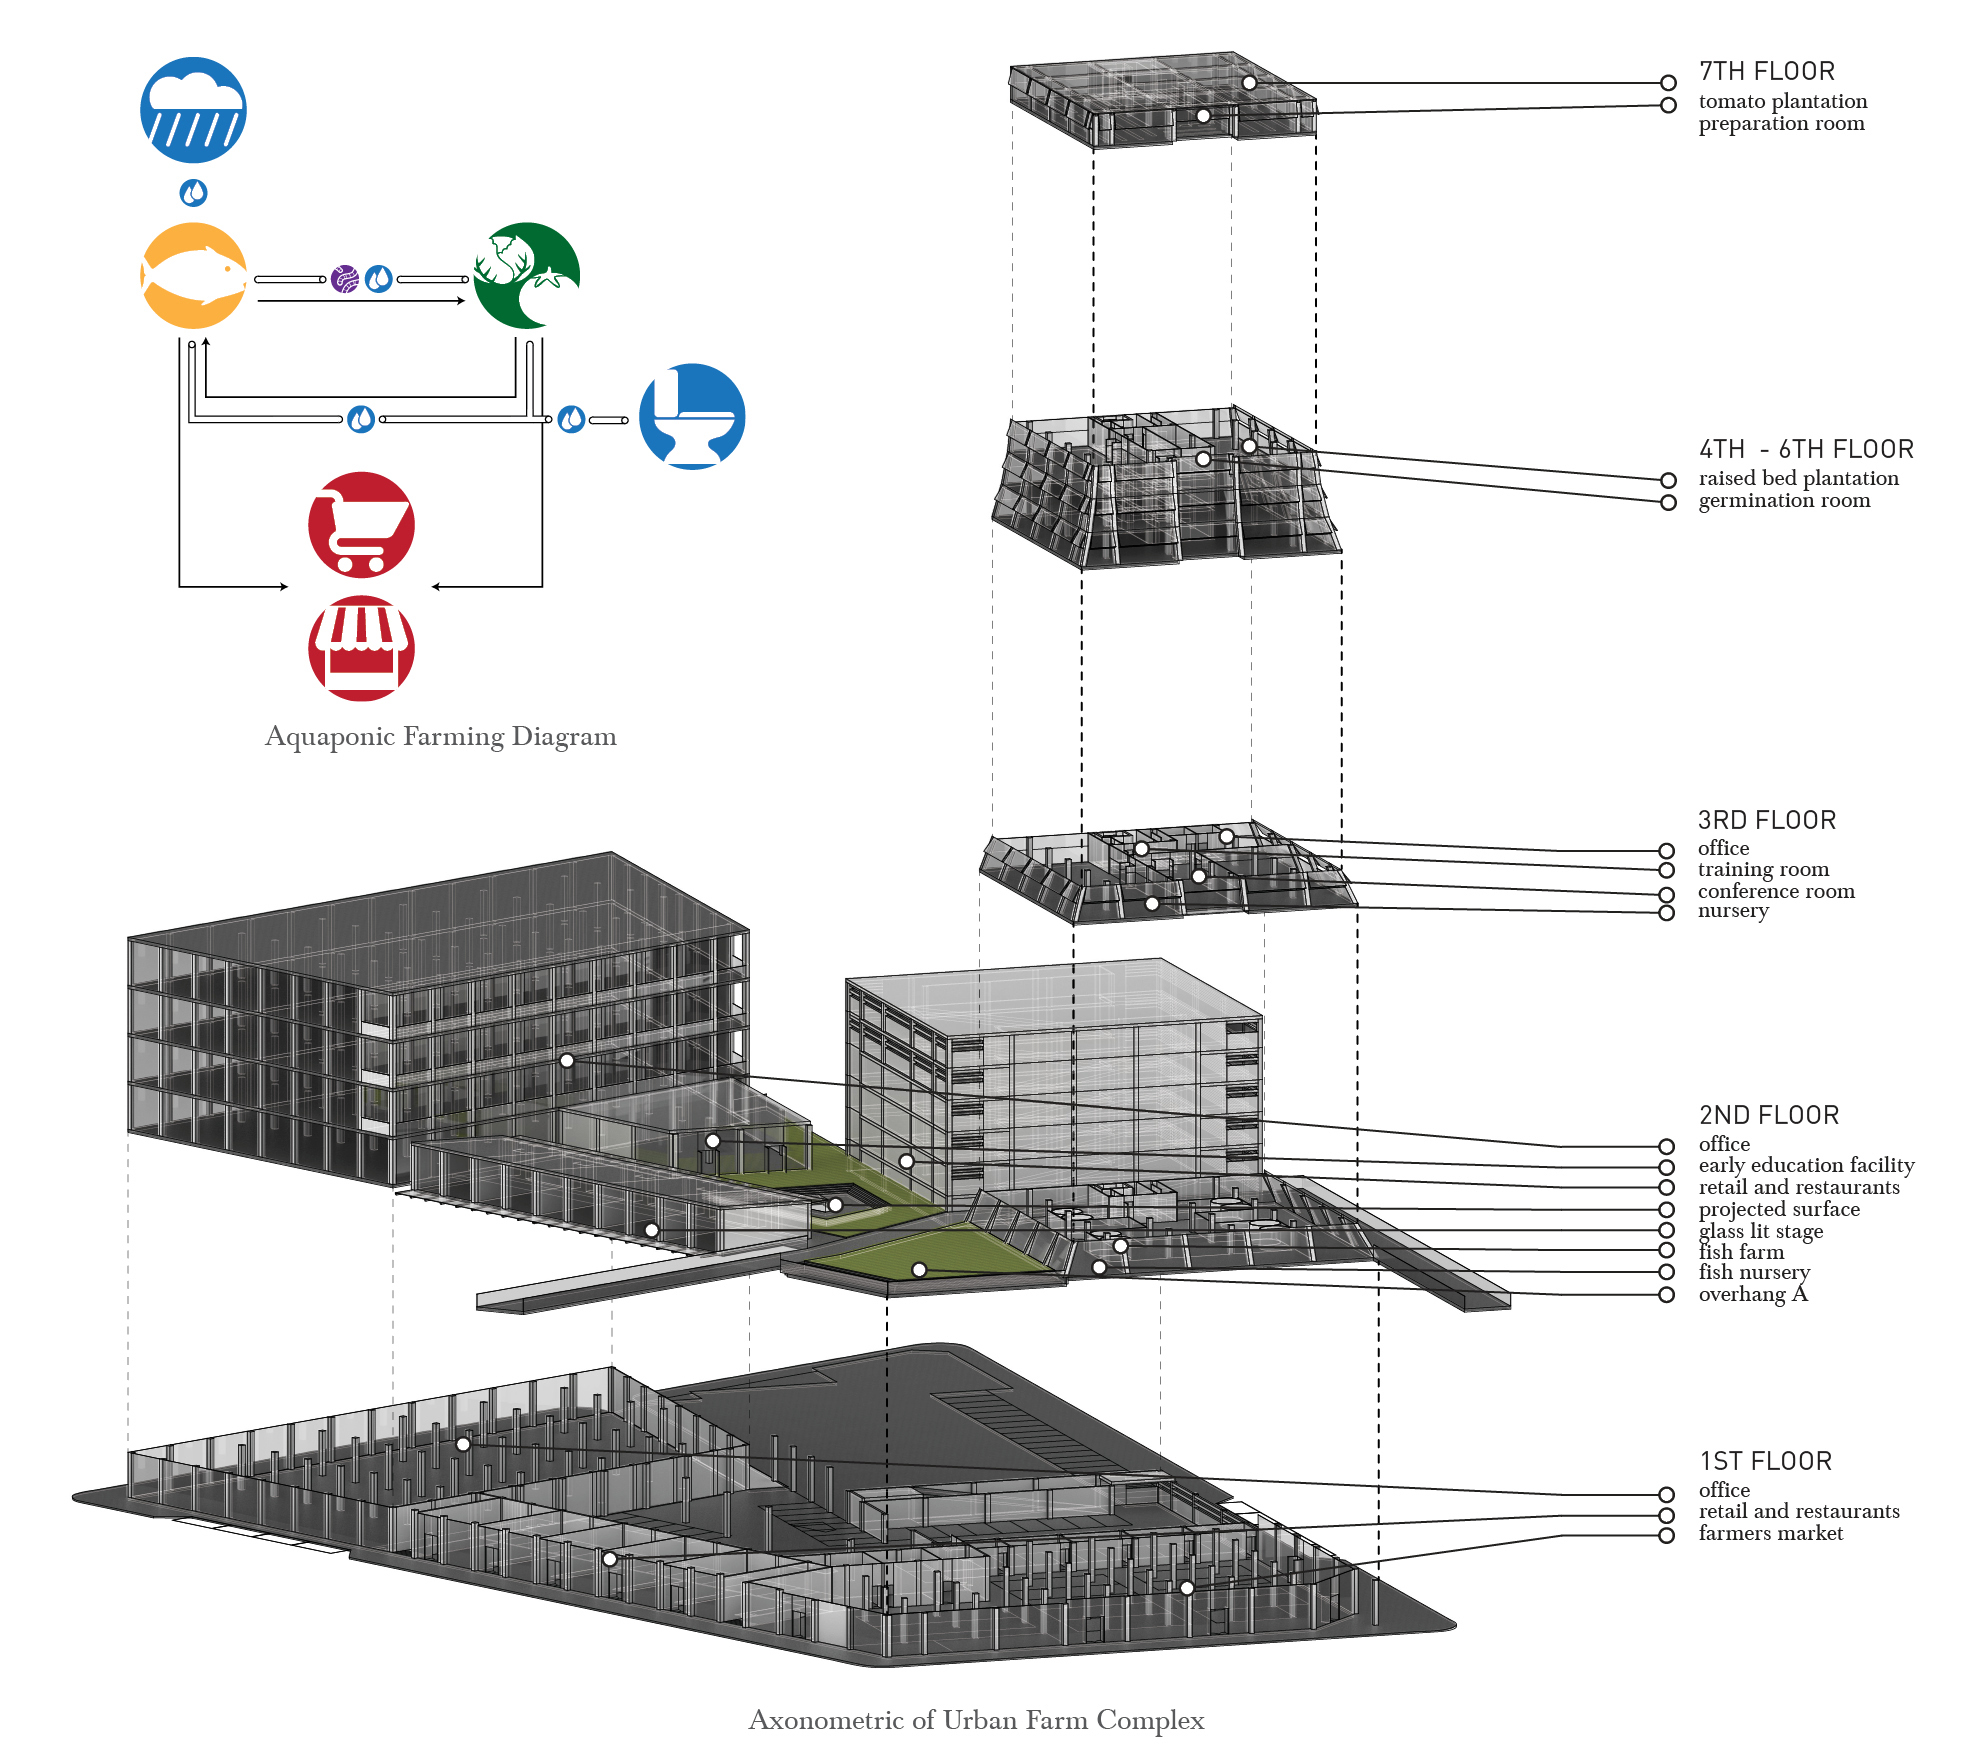 Axonometric and Plan Drawing of Urban Farm Complex